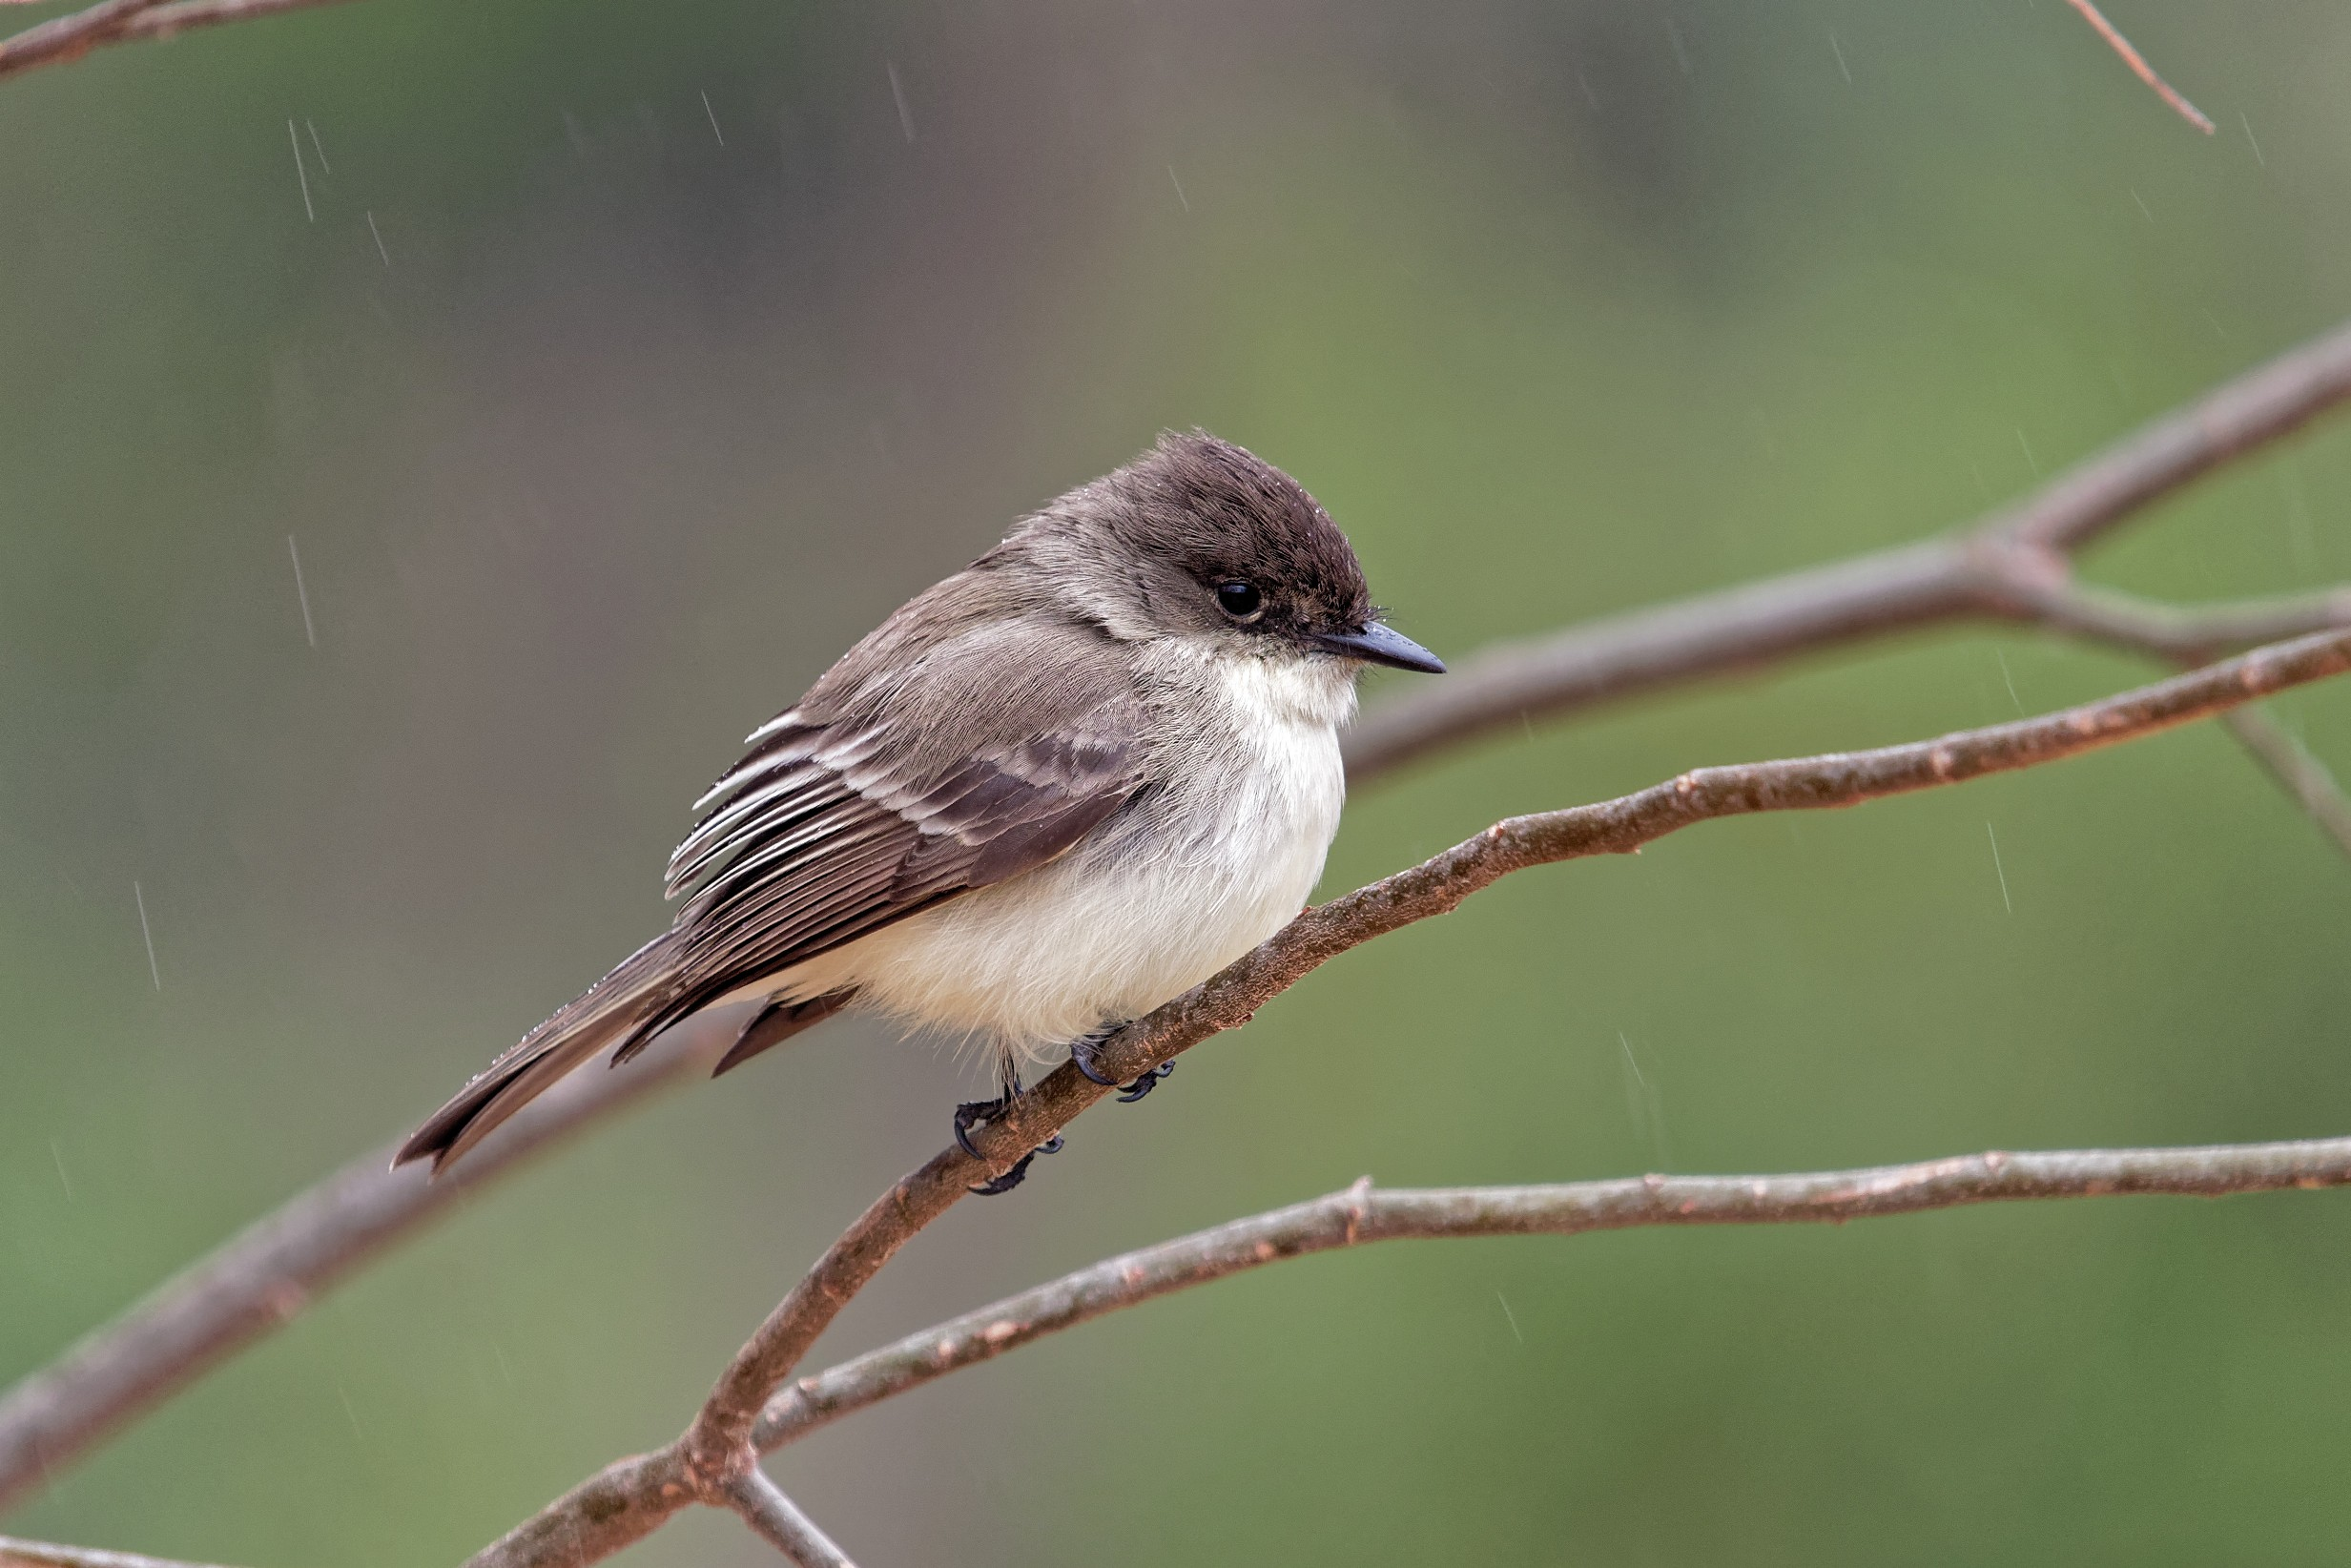 Species: Eastern Phoebe Photo Credit: Dina Perry Date: January 2018 Location: Headwaters Sanctuary